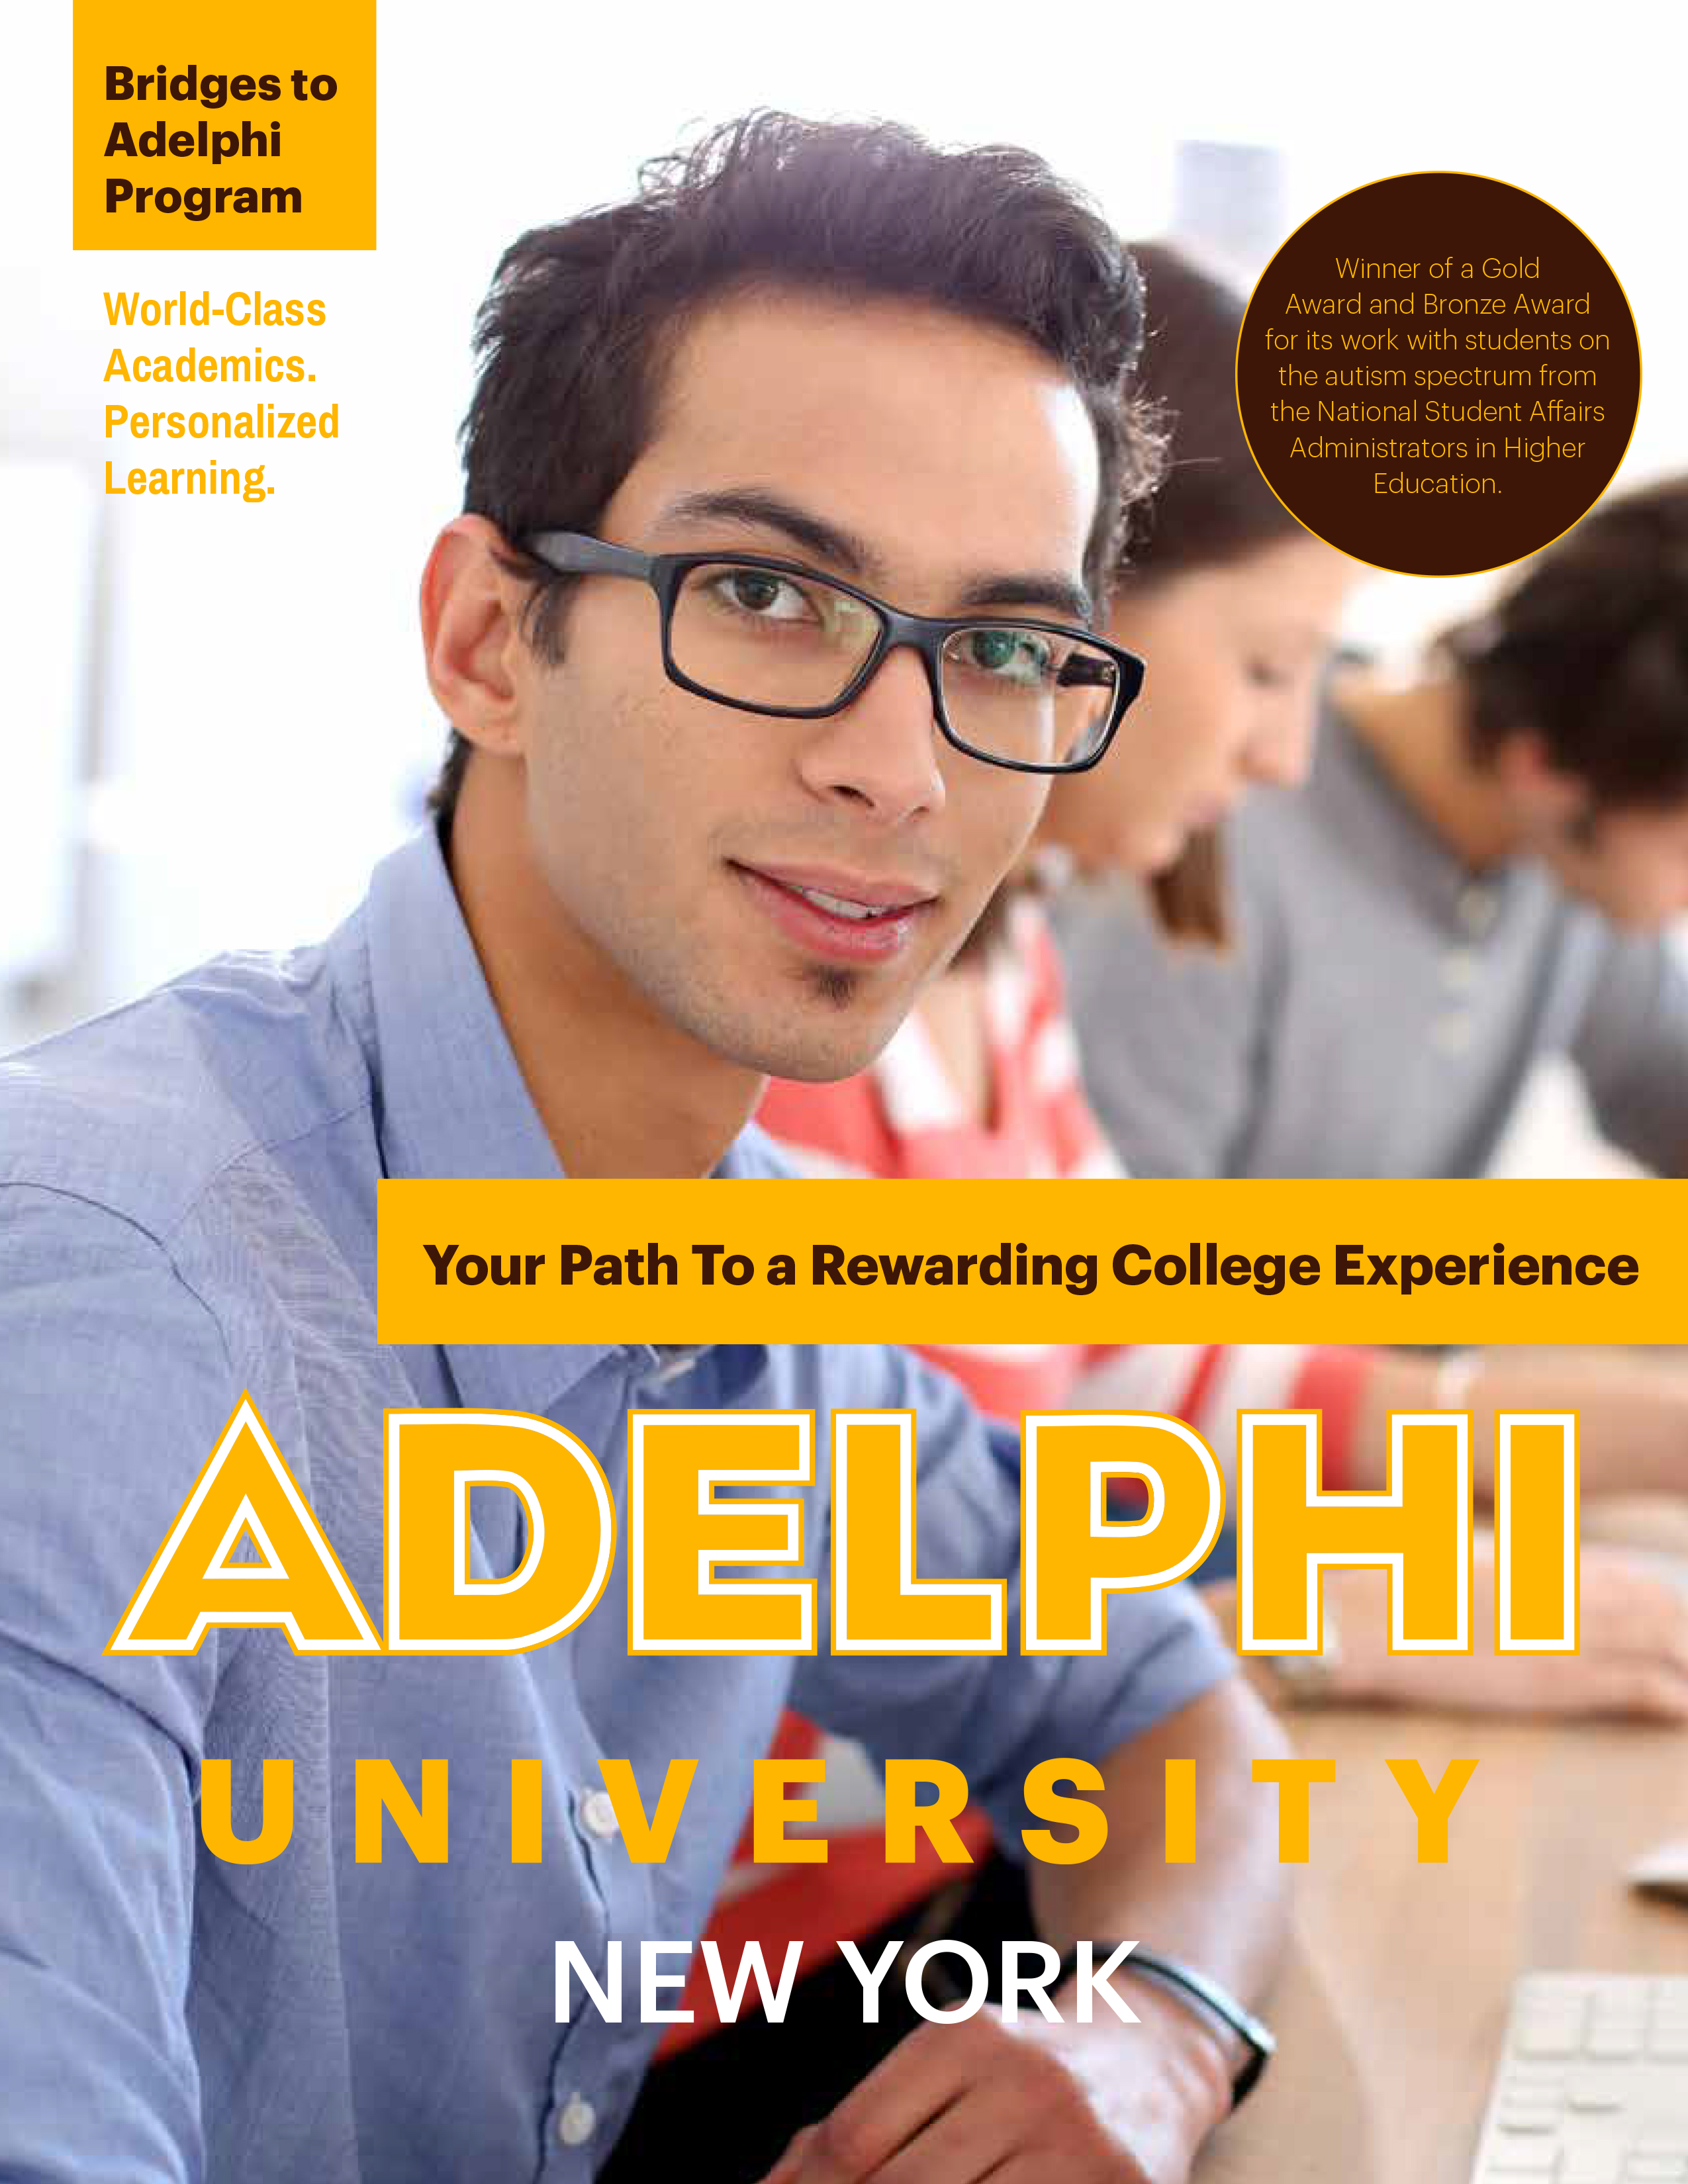 Adelphi Bridges Program